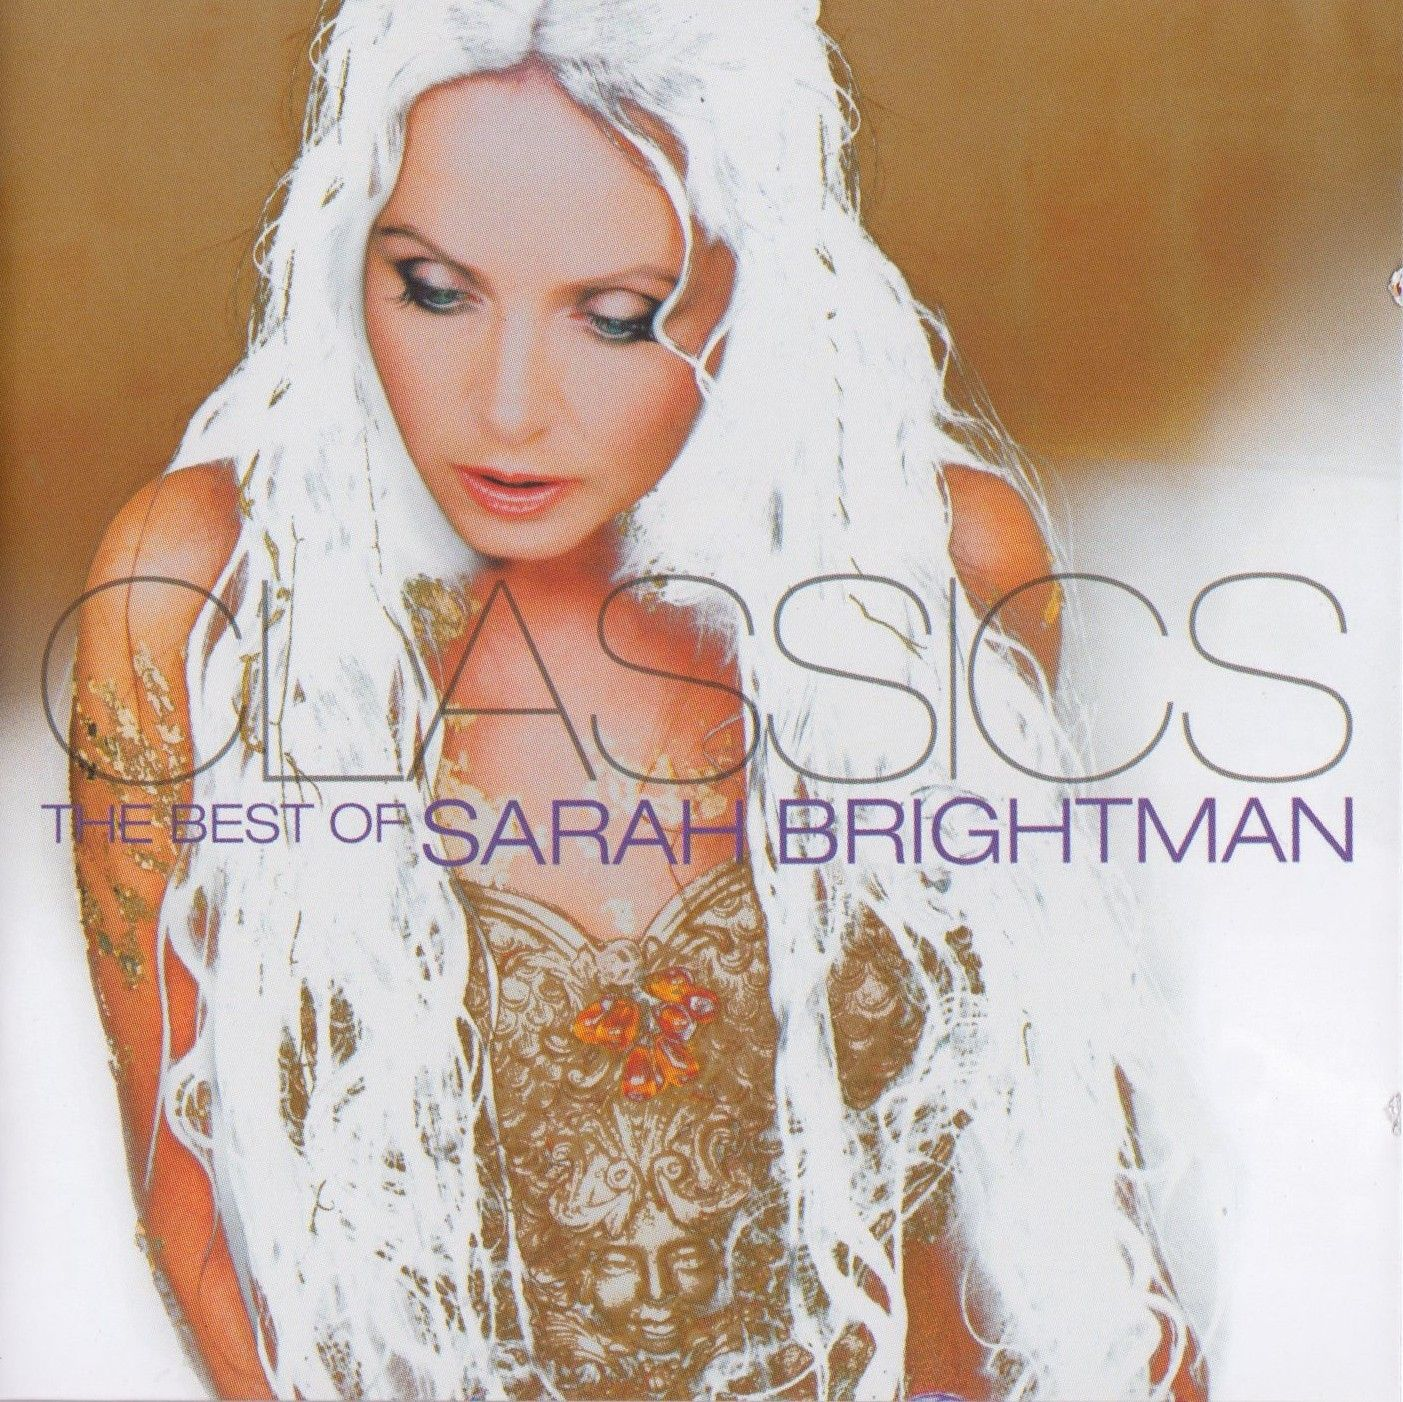 Sarah Brightman - Classics - The Best Of Sarah Brightman album cover